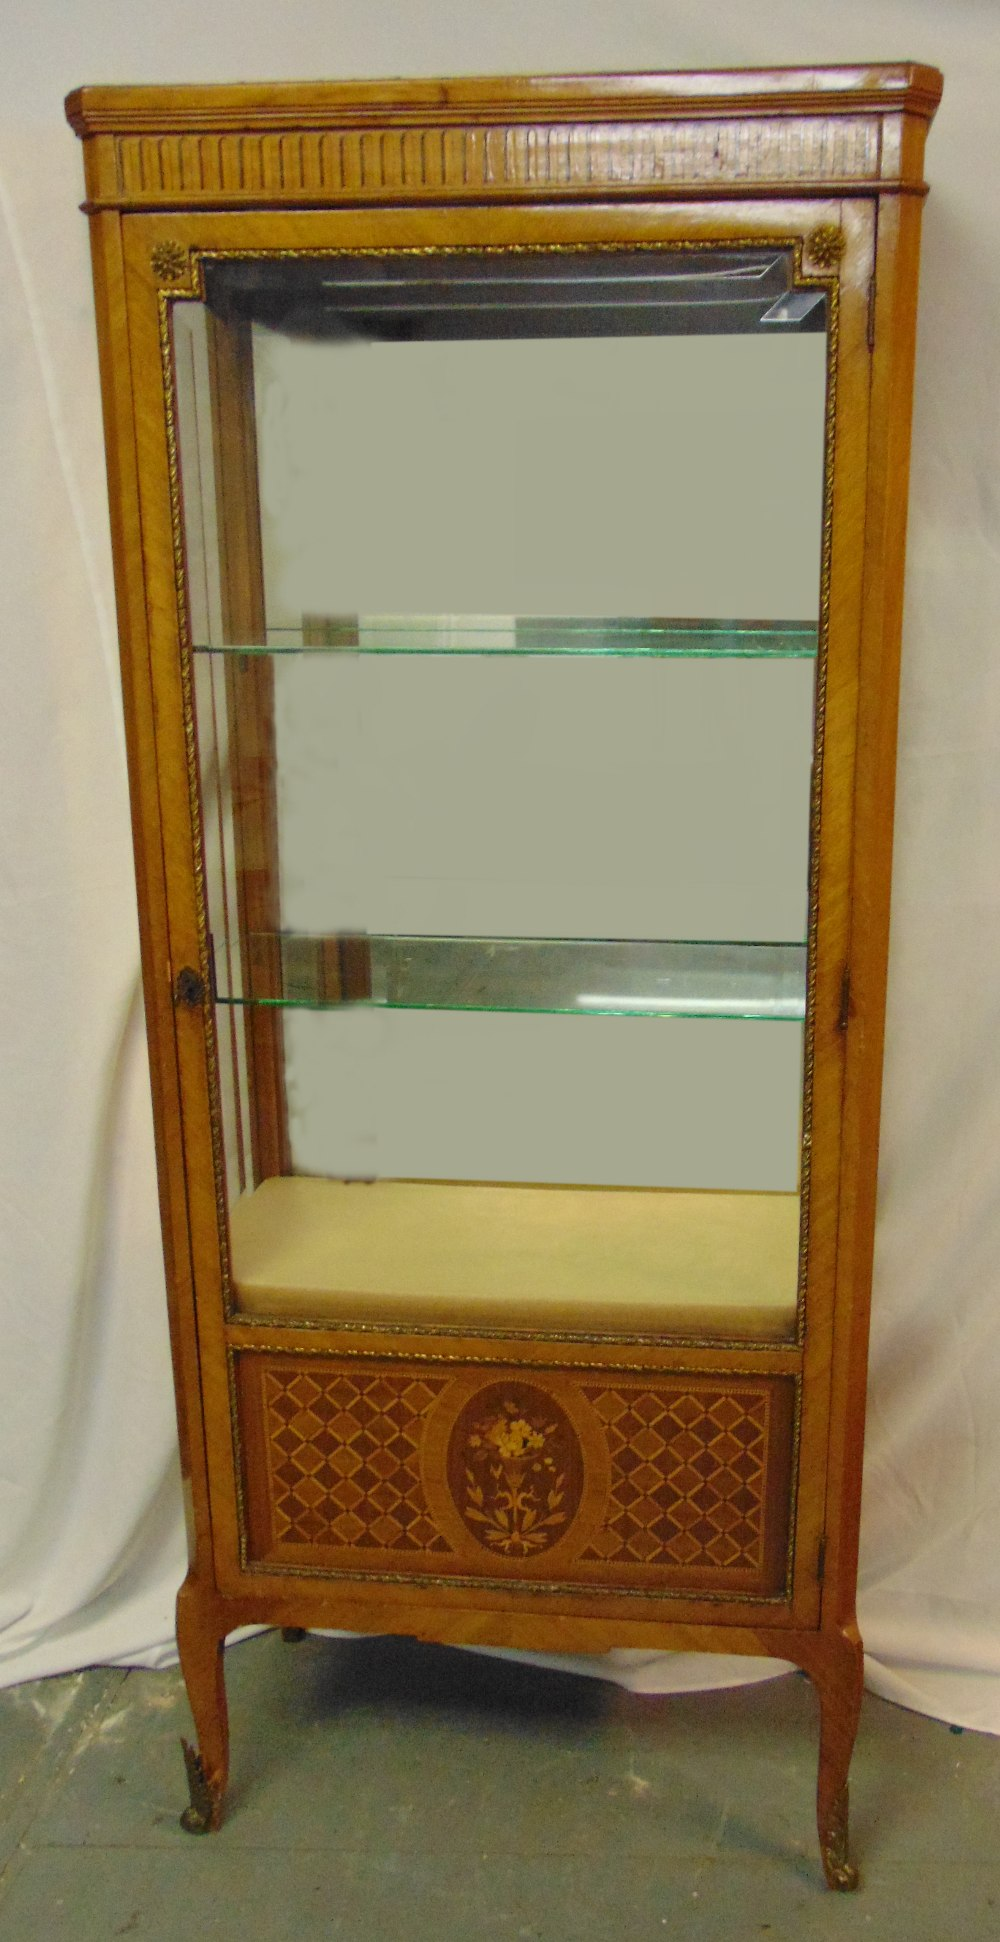 A French style rectangular glazed mahogany inlaid display cabinet on four cabriole legs, 173 x 72